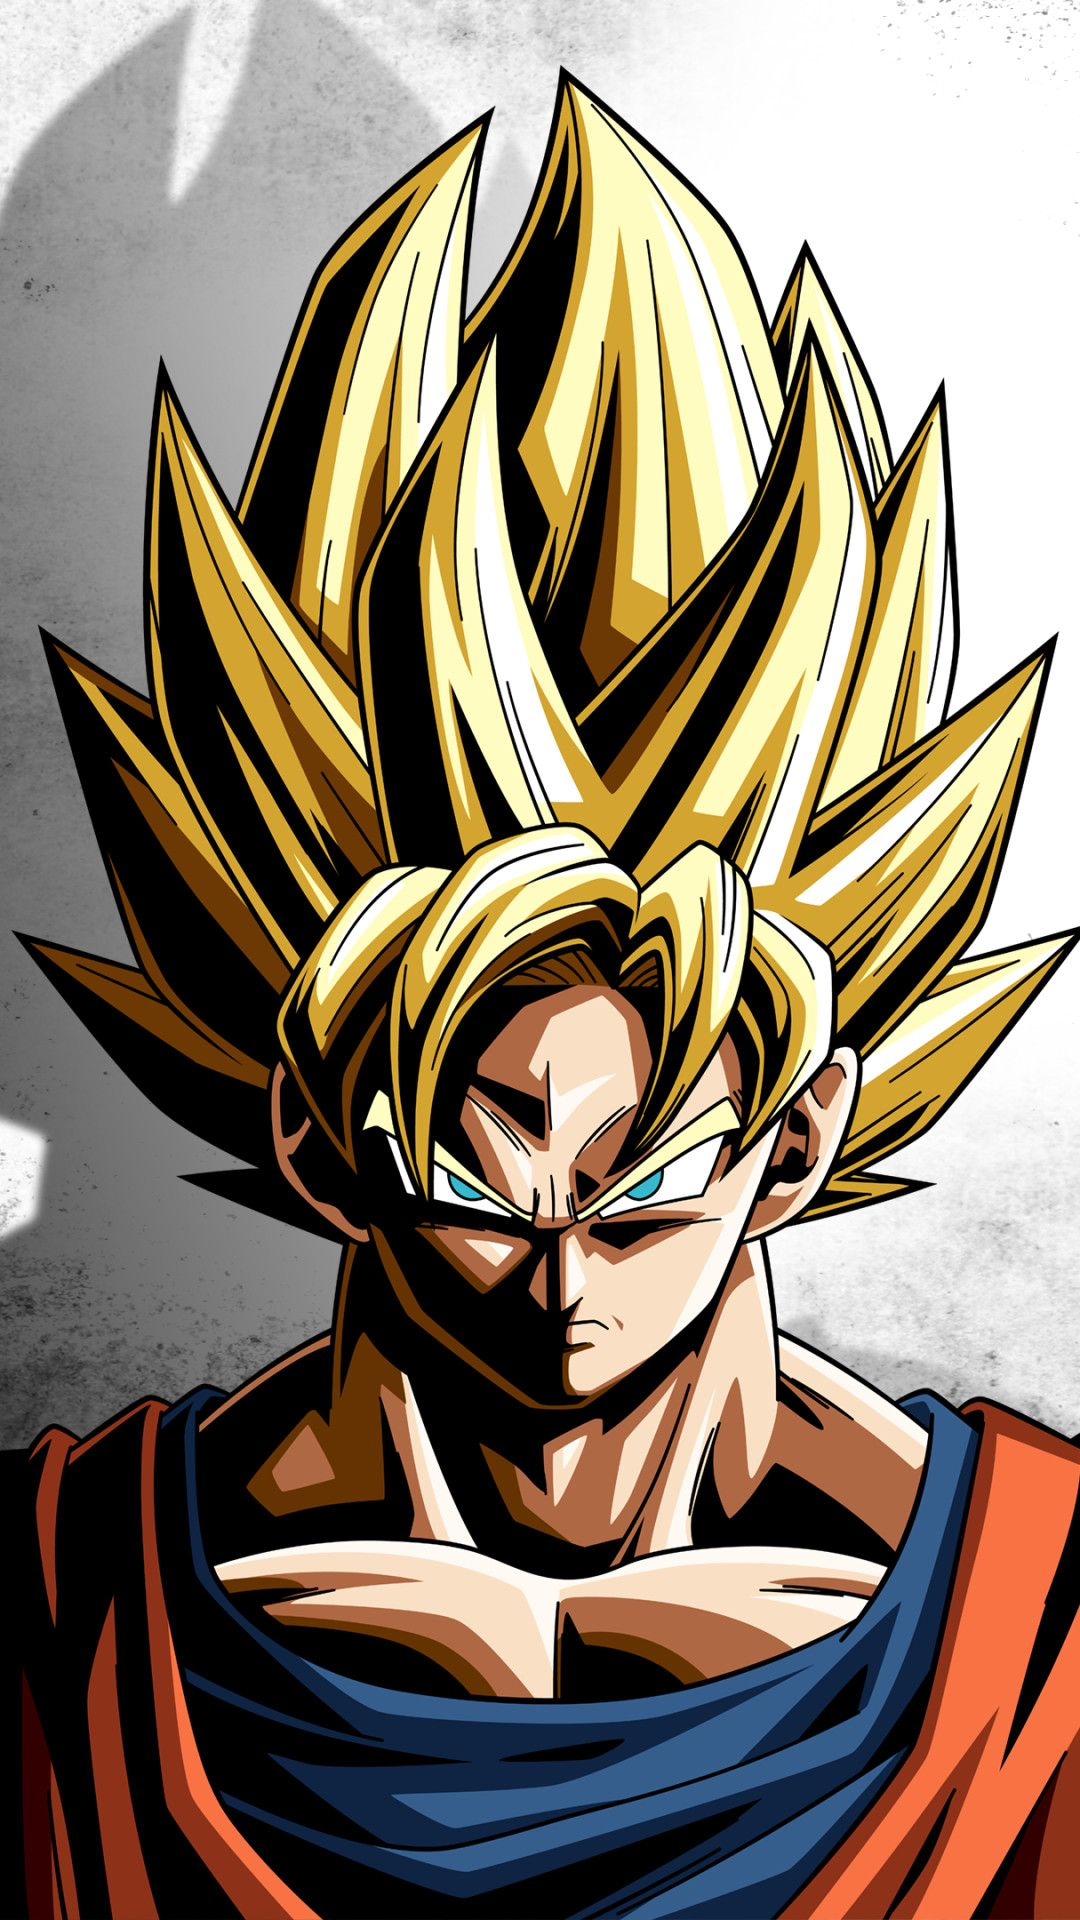 Dbz Wallpaper Hd For Mobile Bestpicture1org